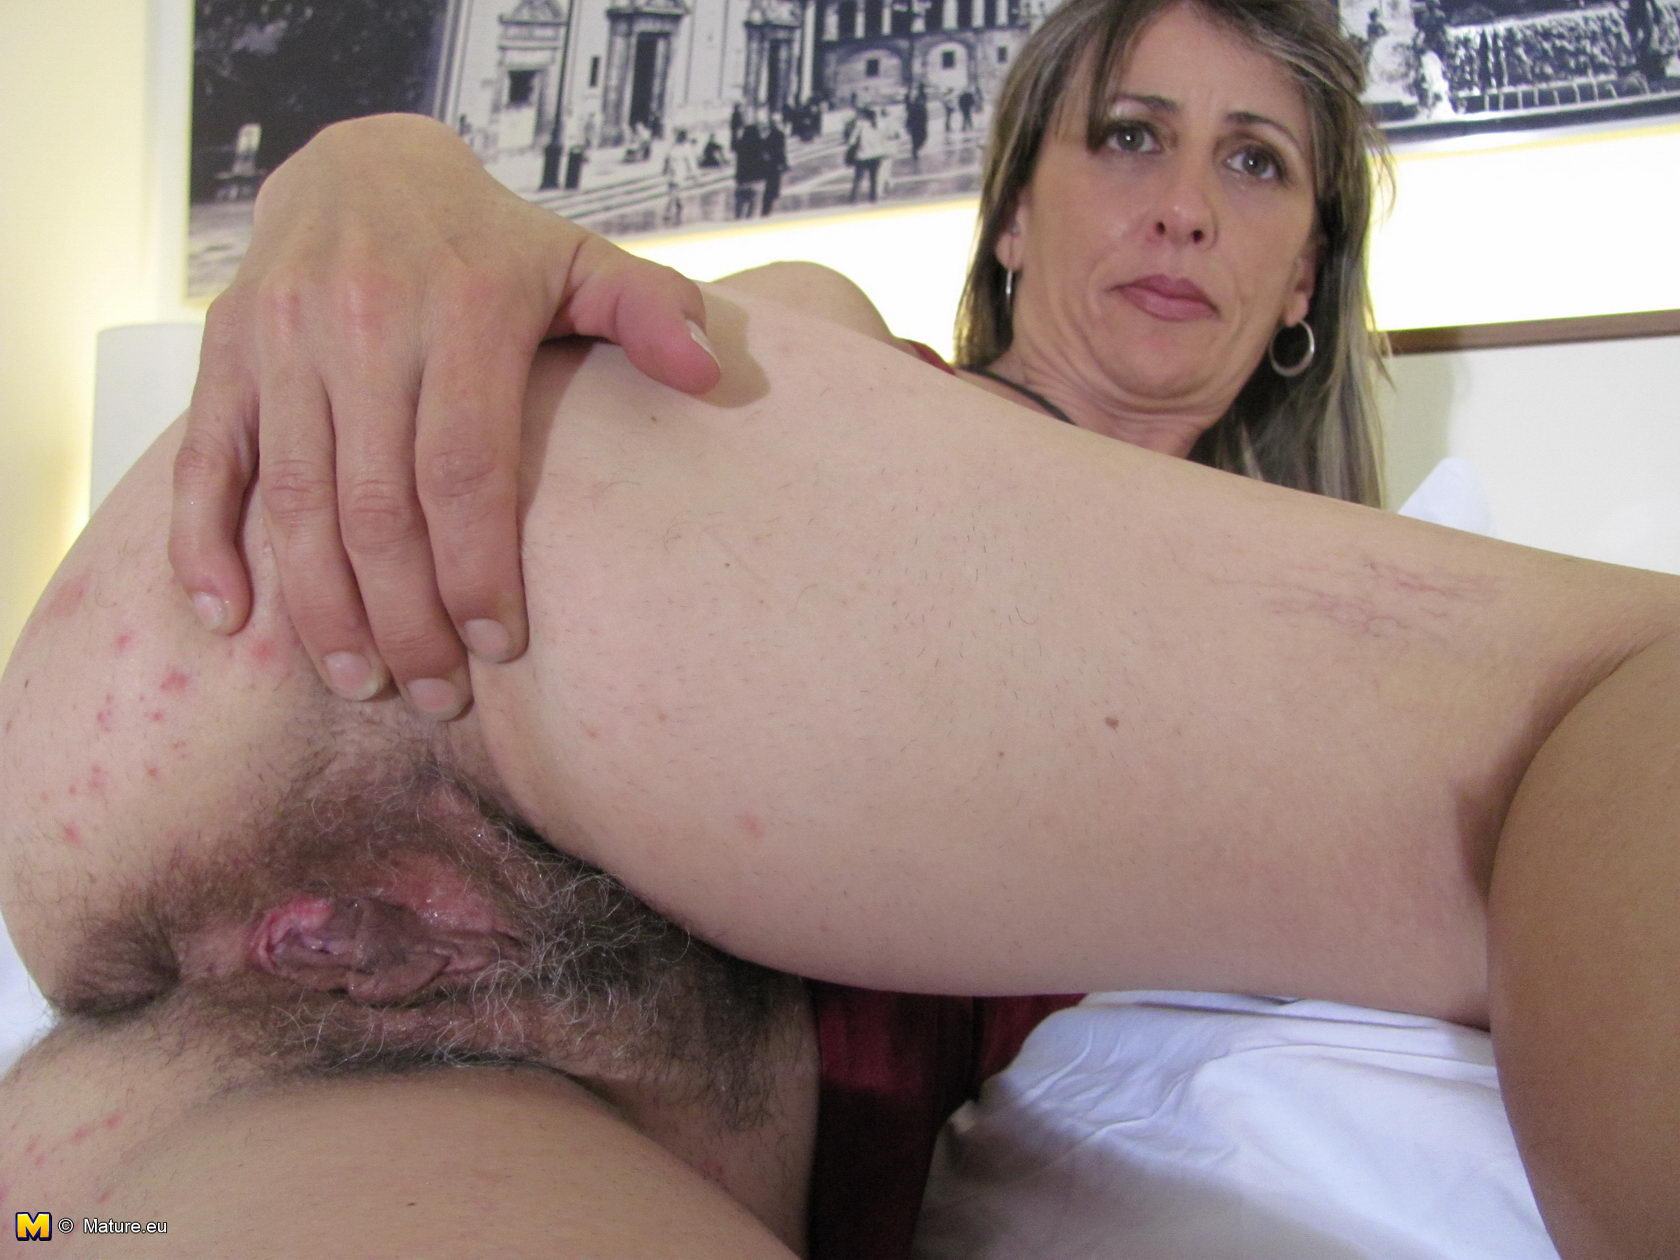 spread pussies of amateurs and housewives - motherless